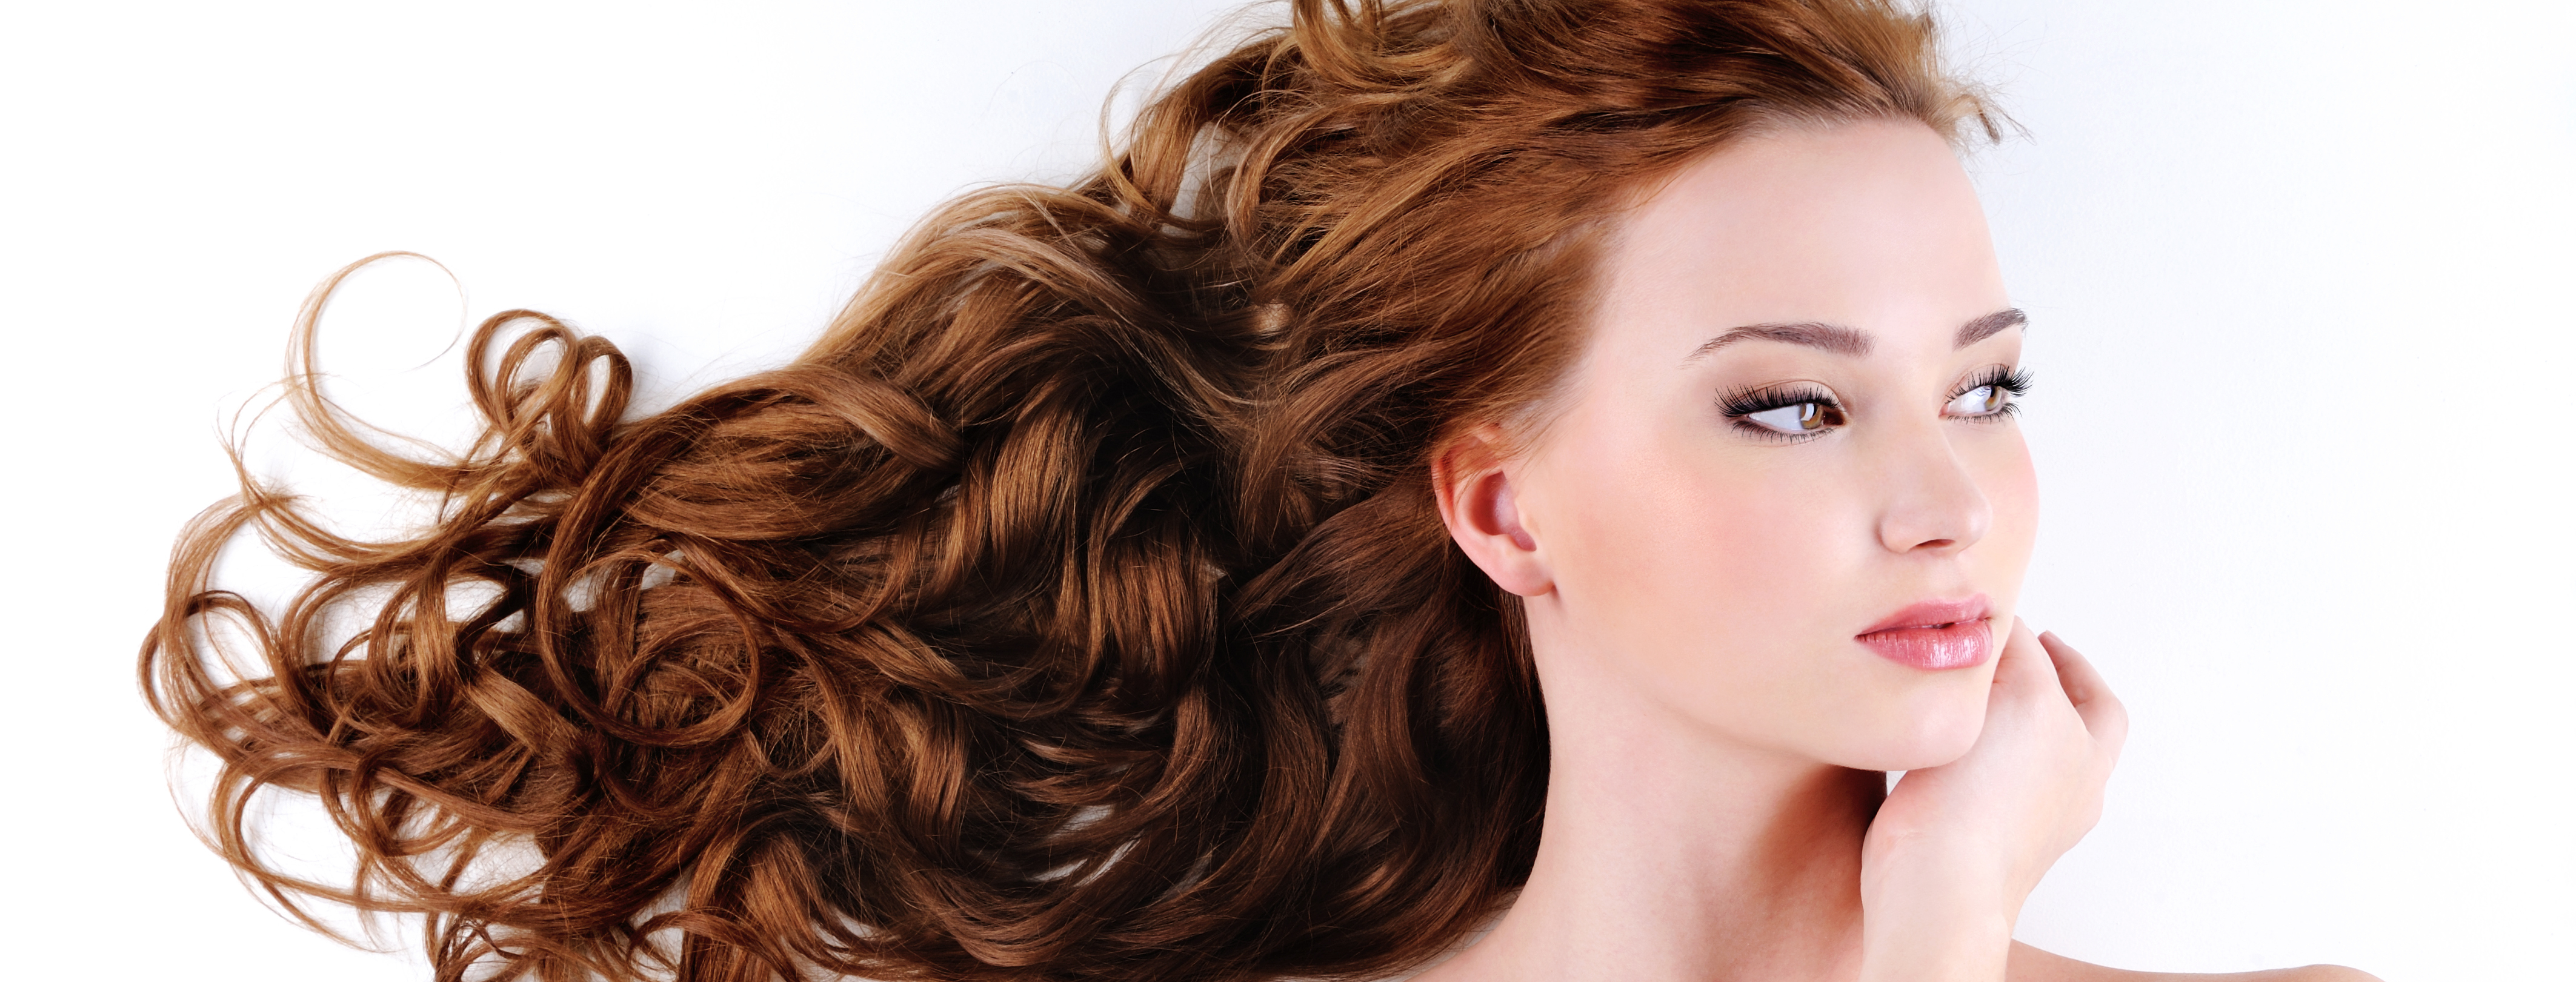 A full service hair salon offering cosmopolitan beauty trends north of Boston